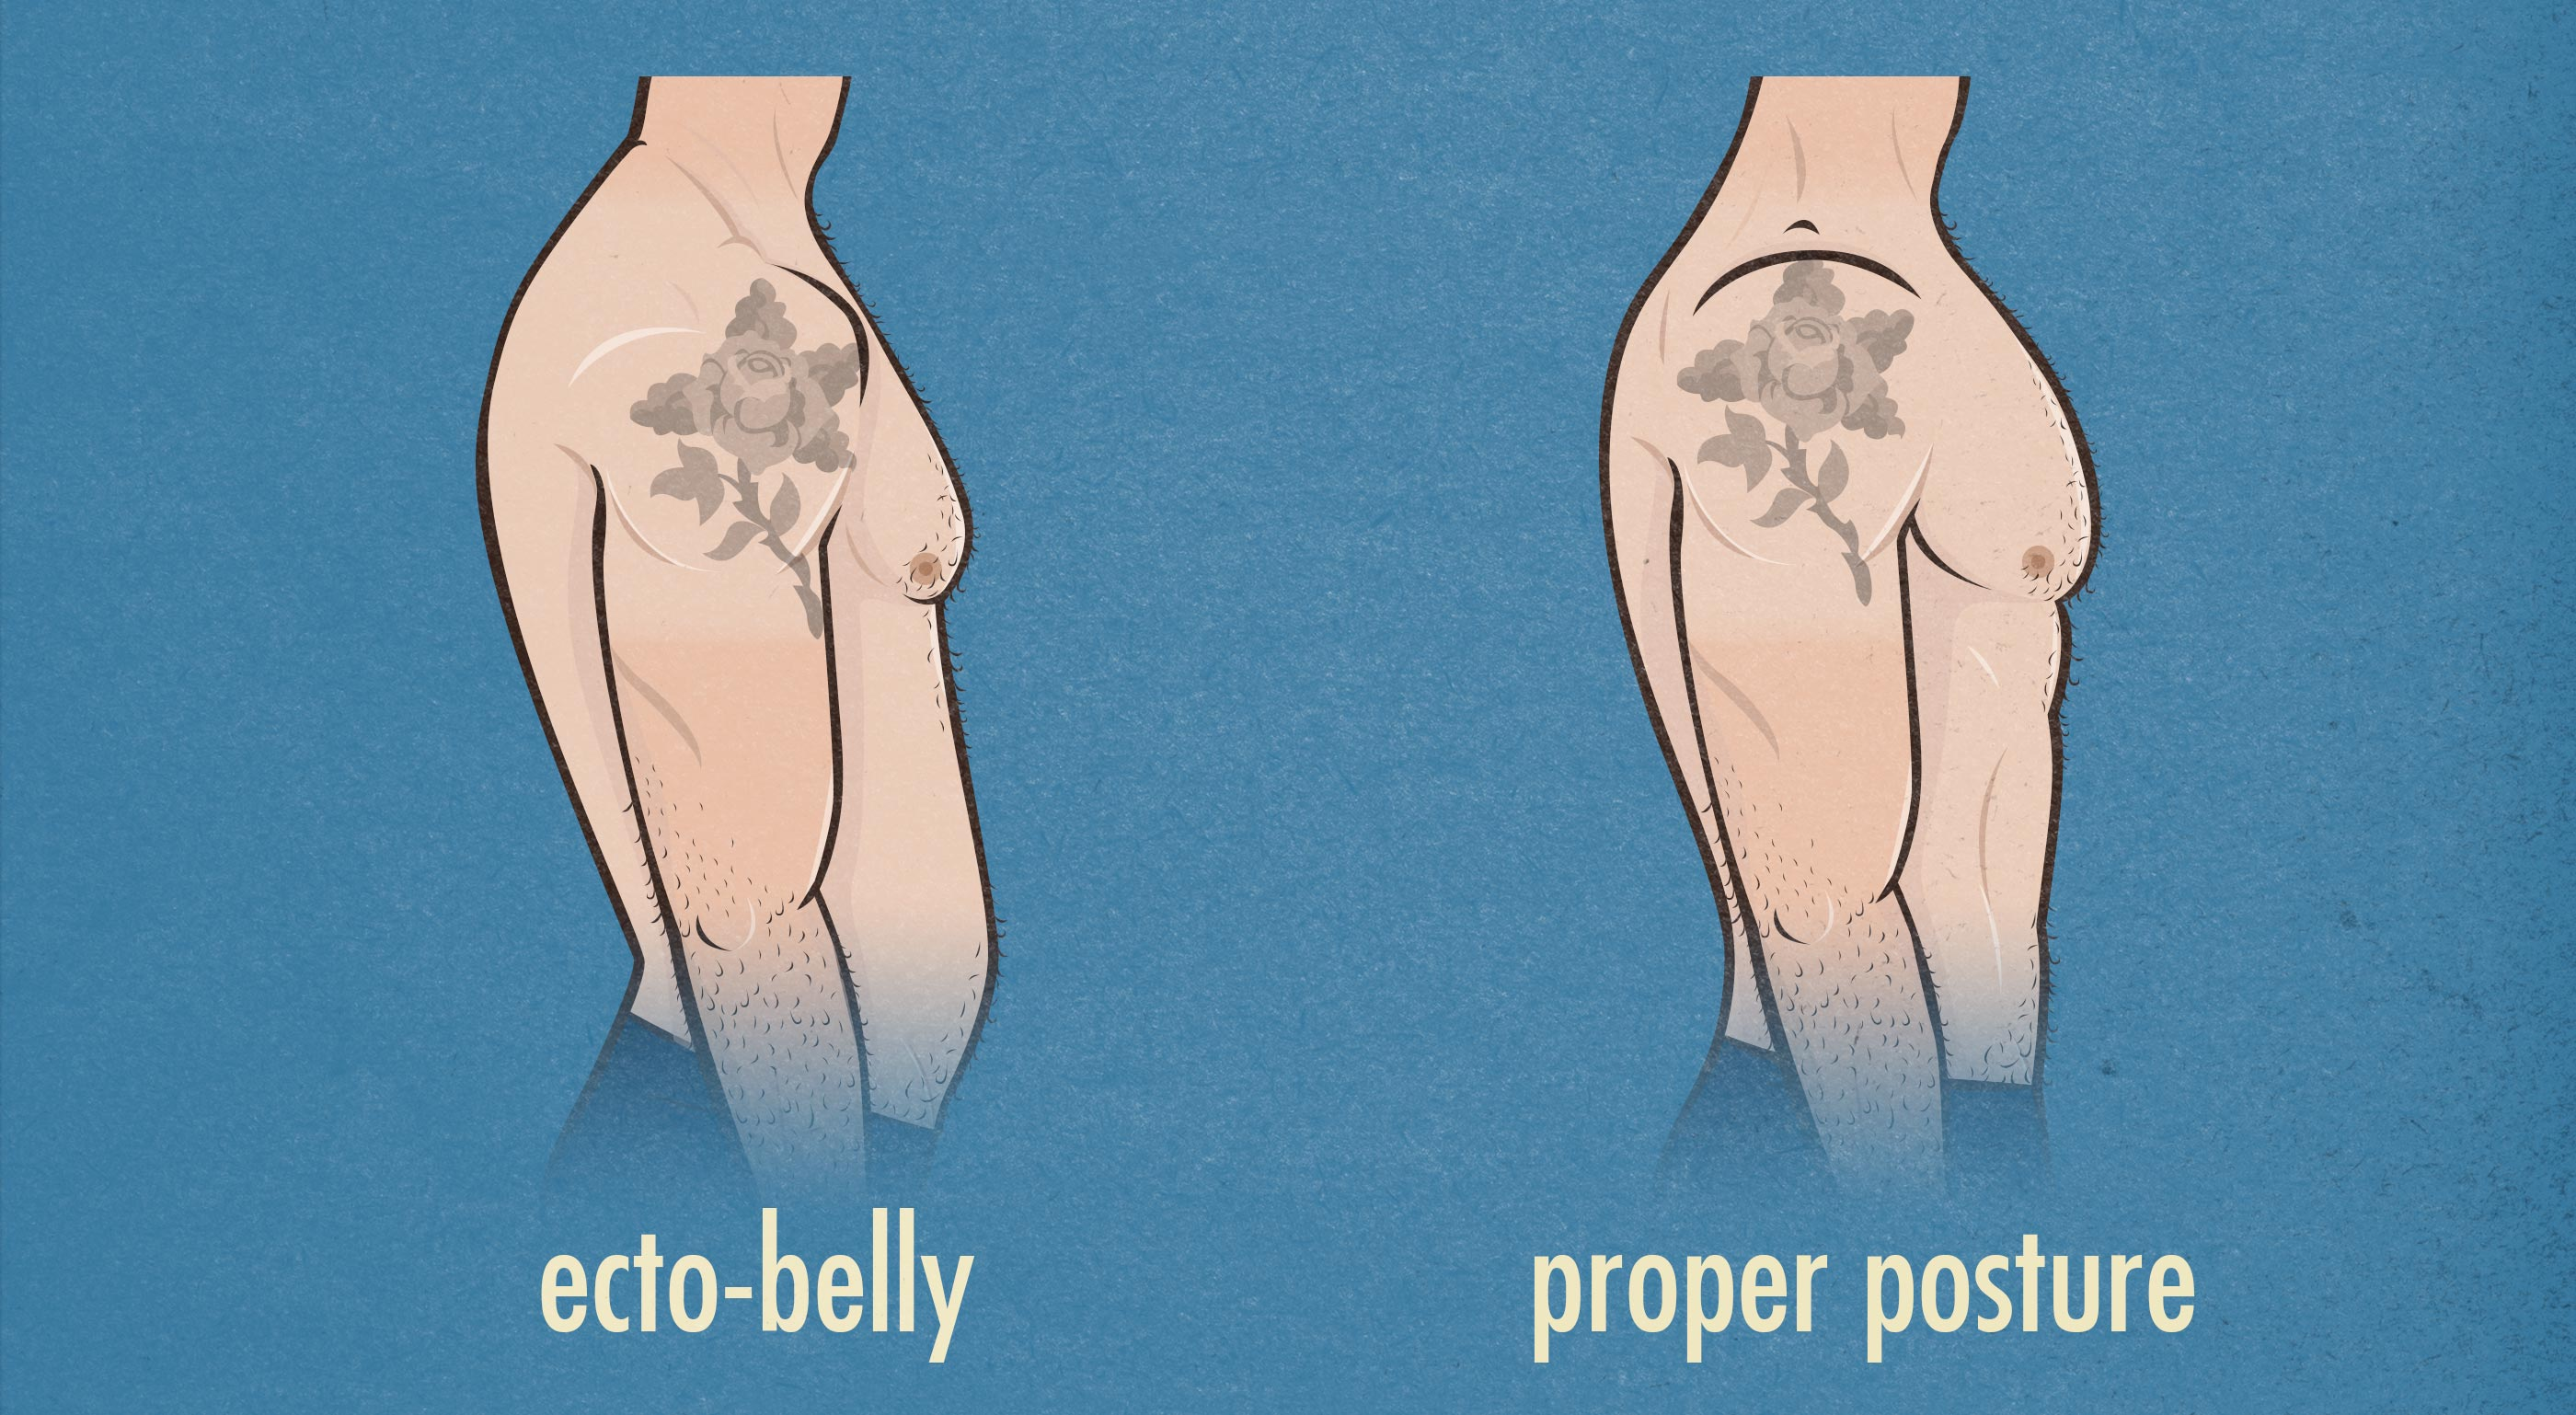 Bad posture can make a belly. Image copyright Bony to Beastly